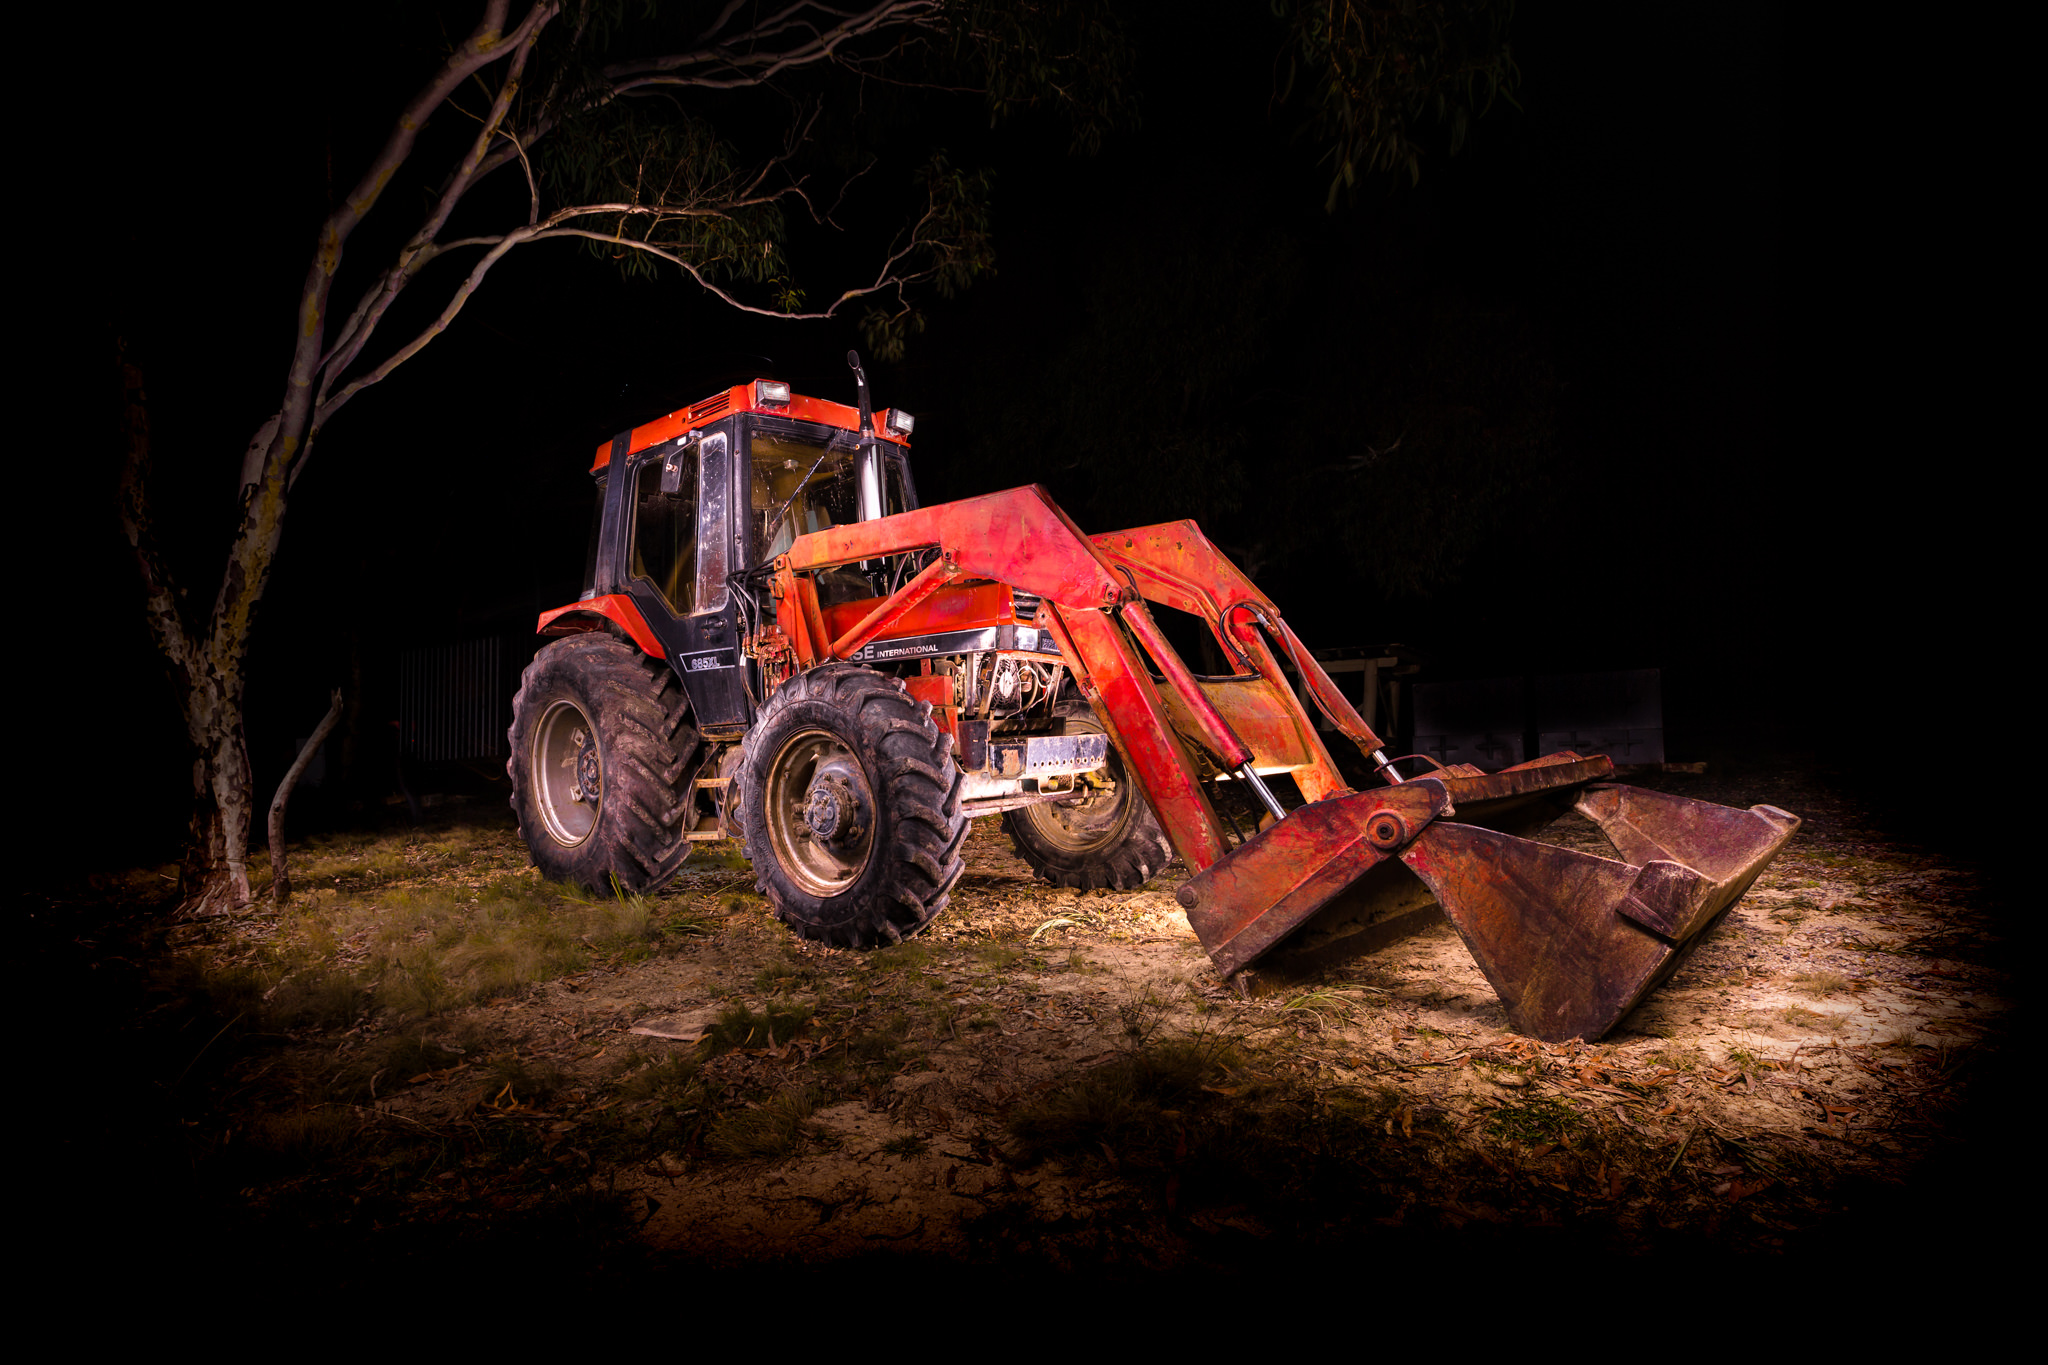 Automotive photography of Case Tractor at Night using long exposure